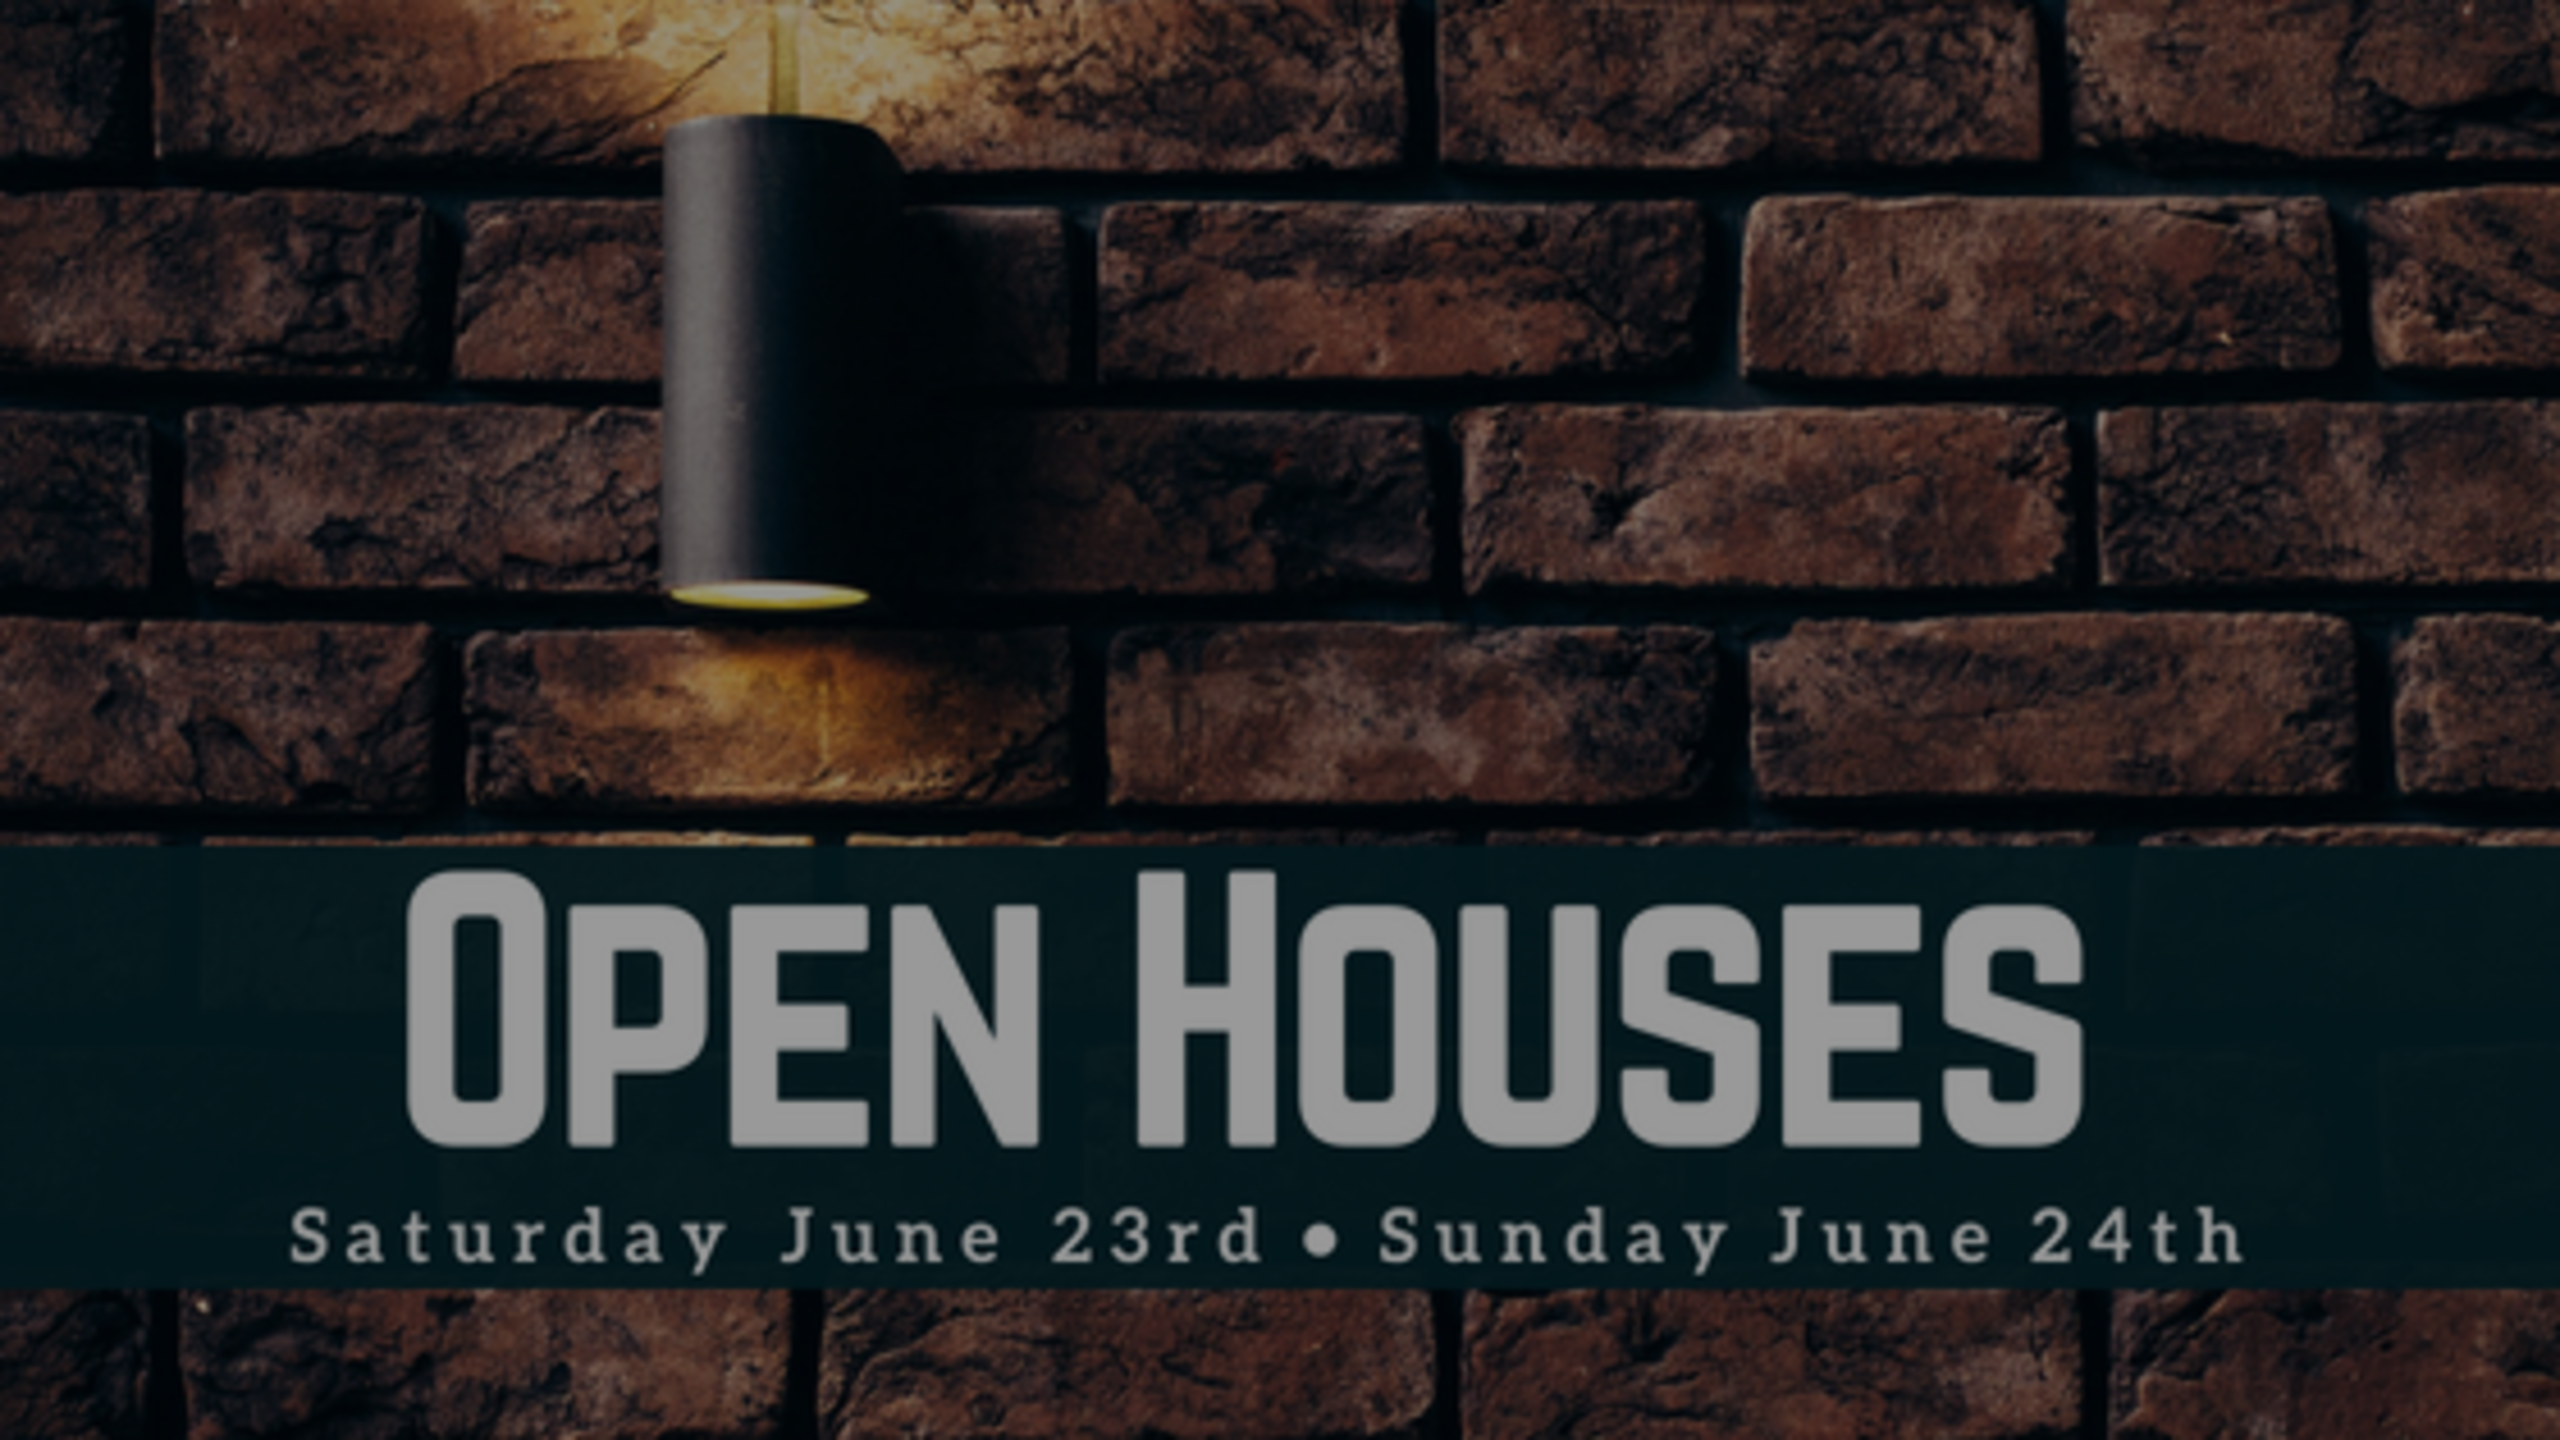 Our Open Houses: Weekend of 6/23 + 6/24